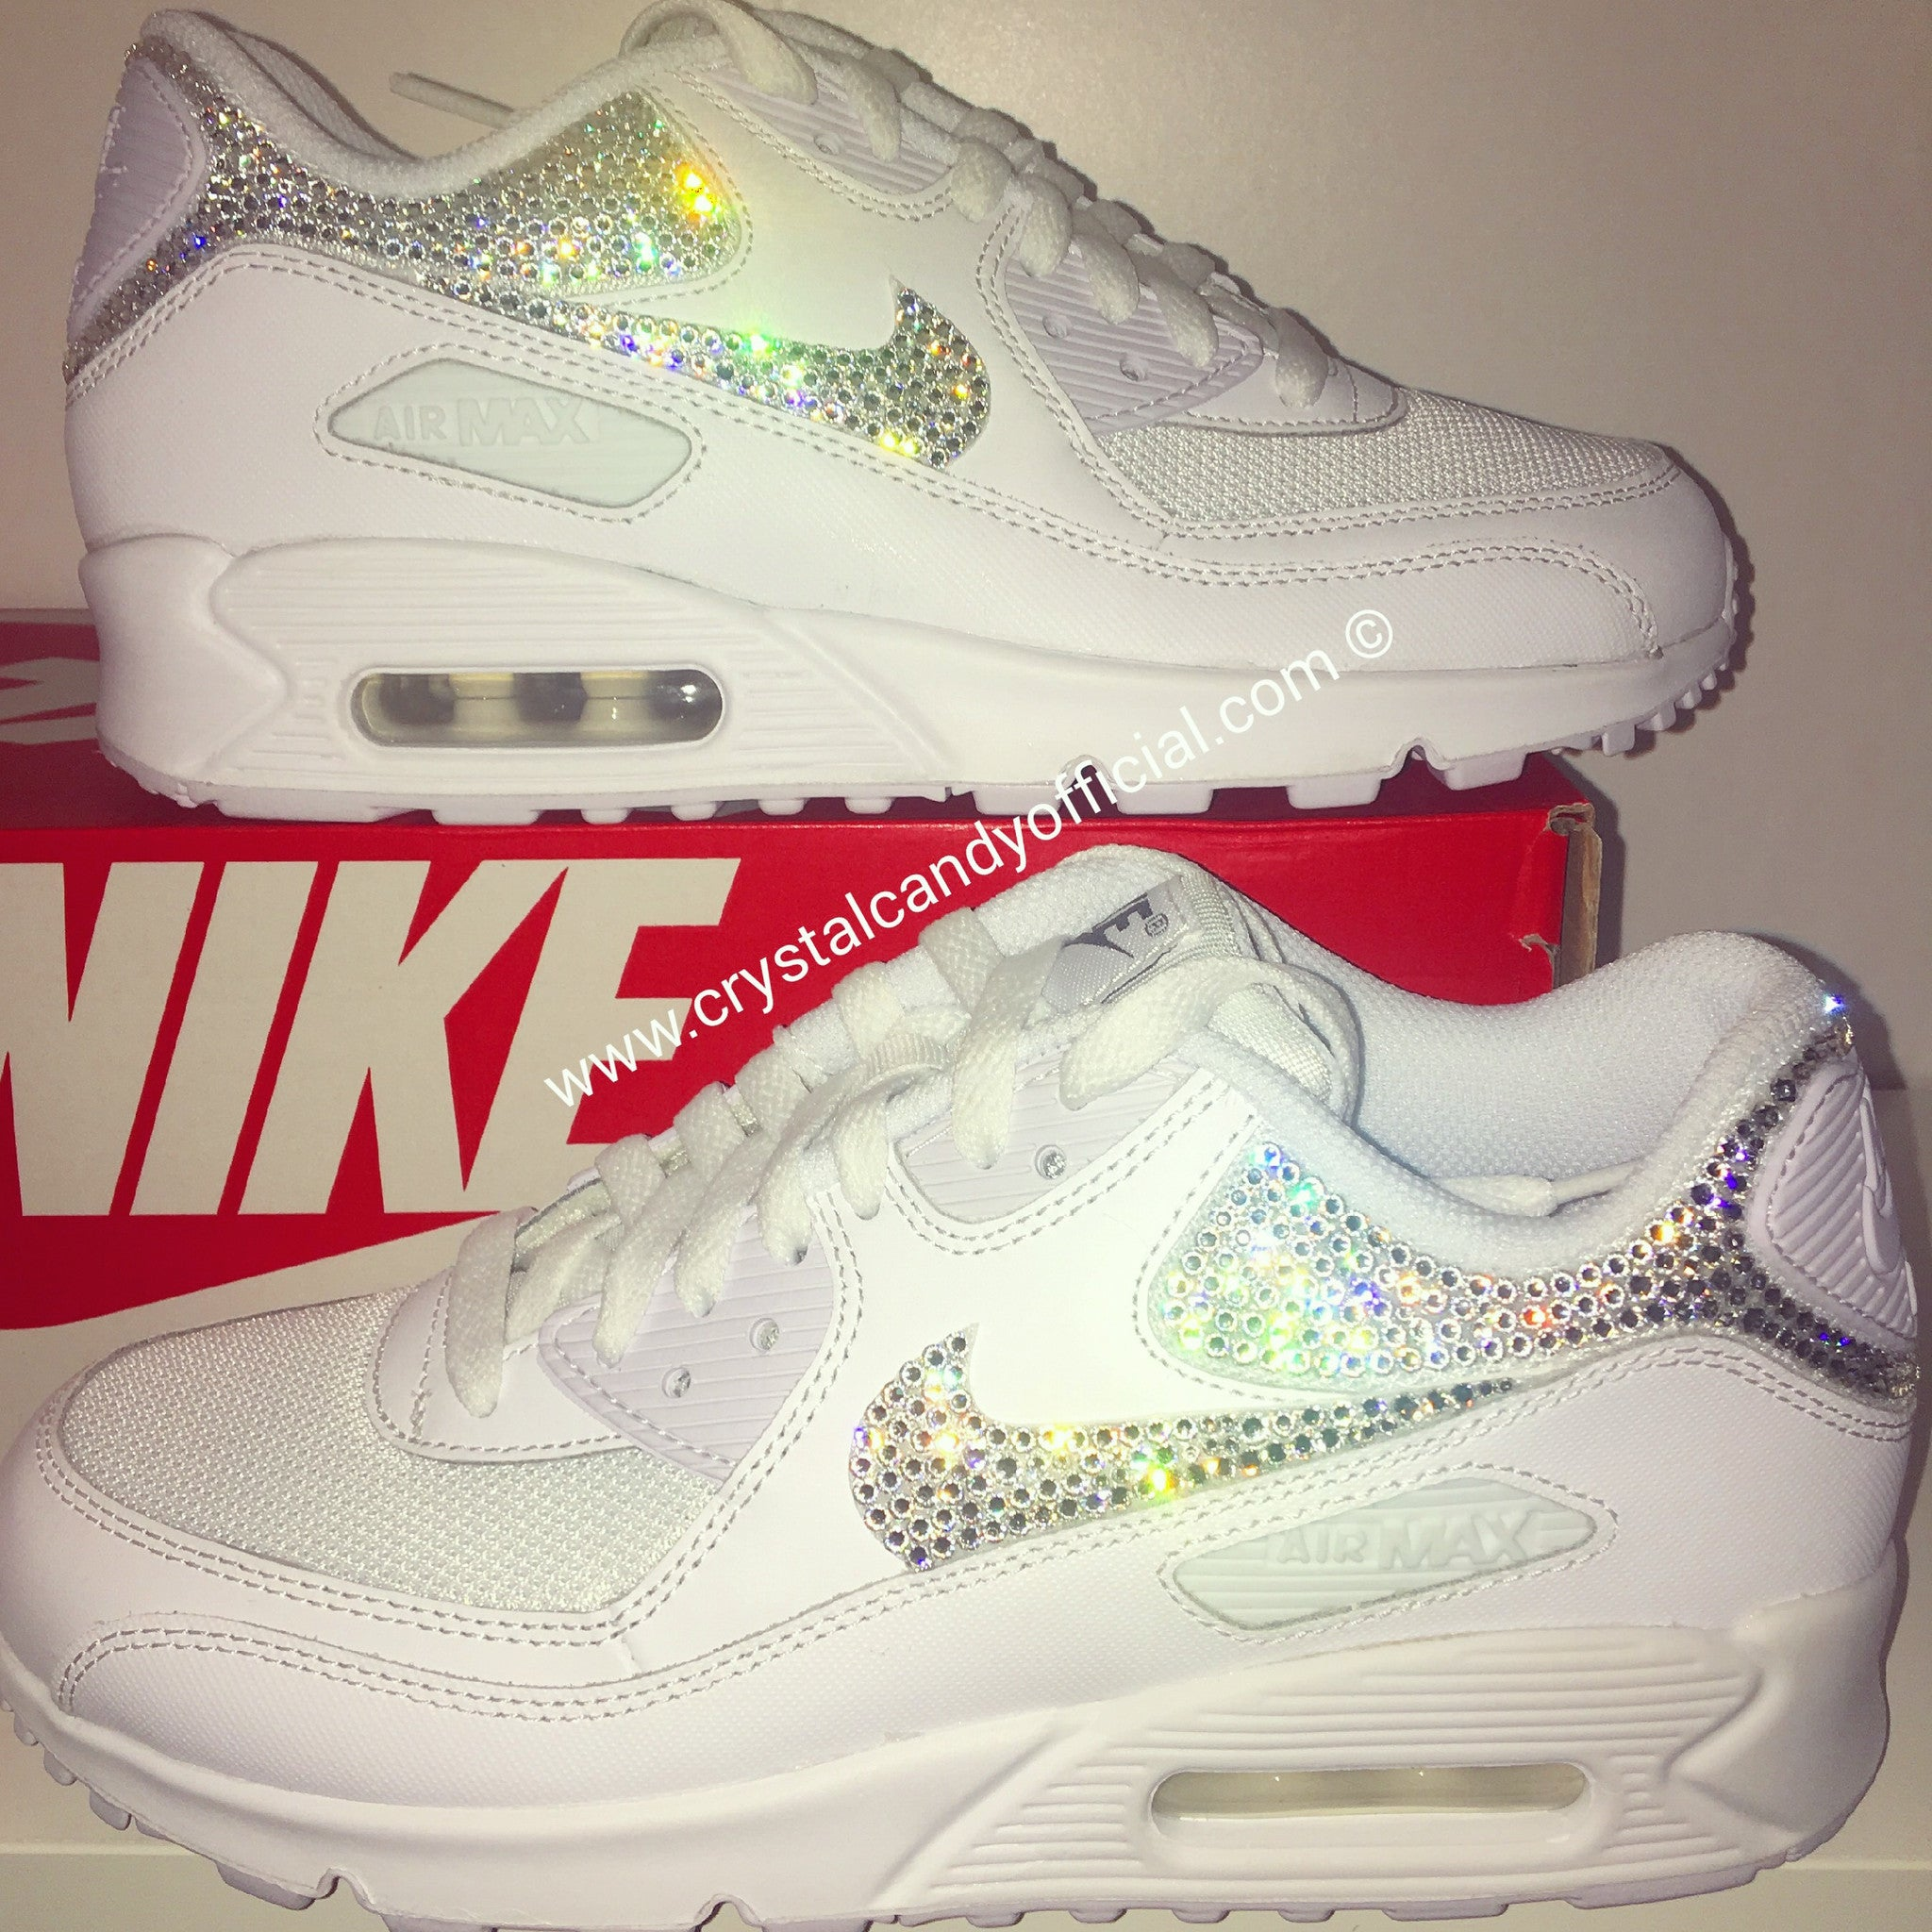 Crystal Nike Air Max 90 s in White (backs   ticks) 950e5a047863